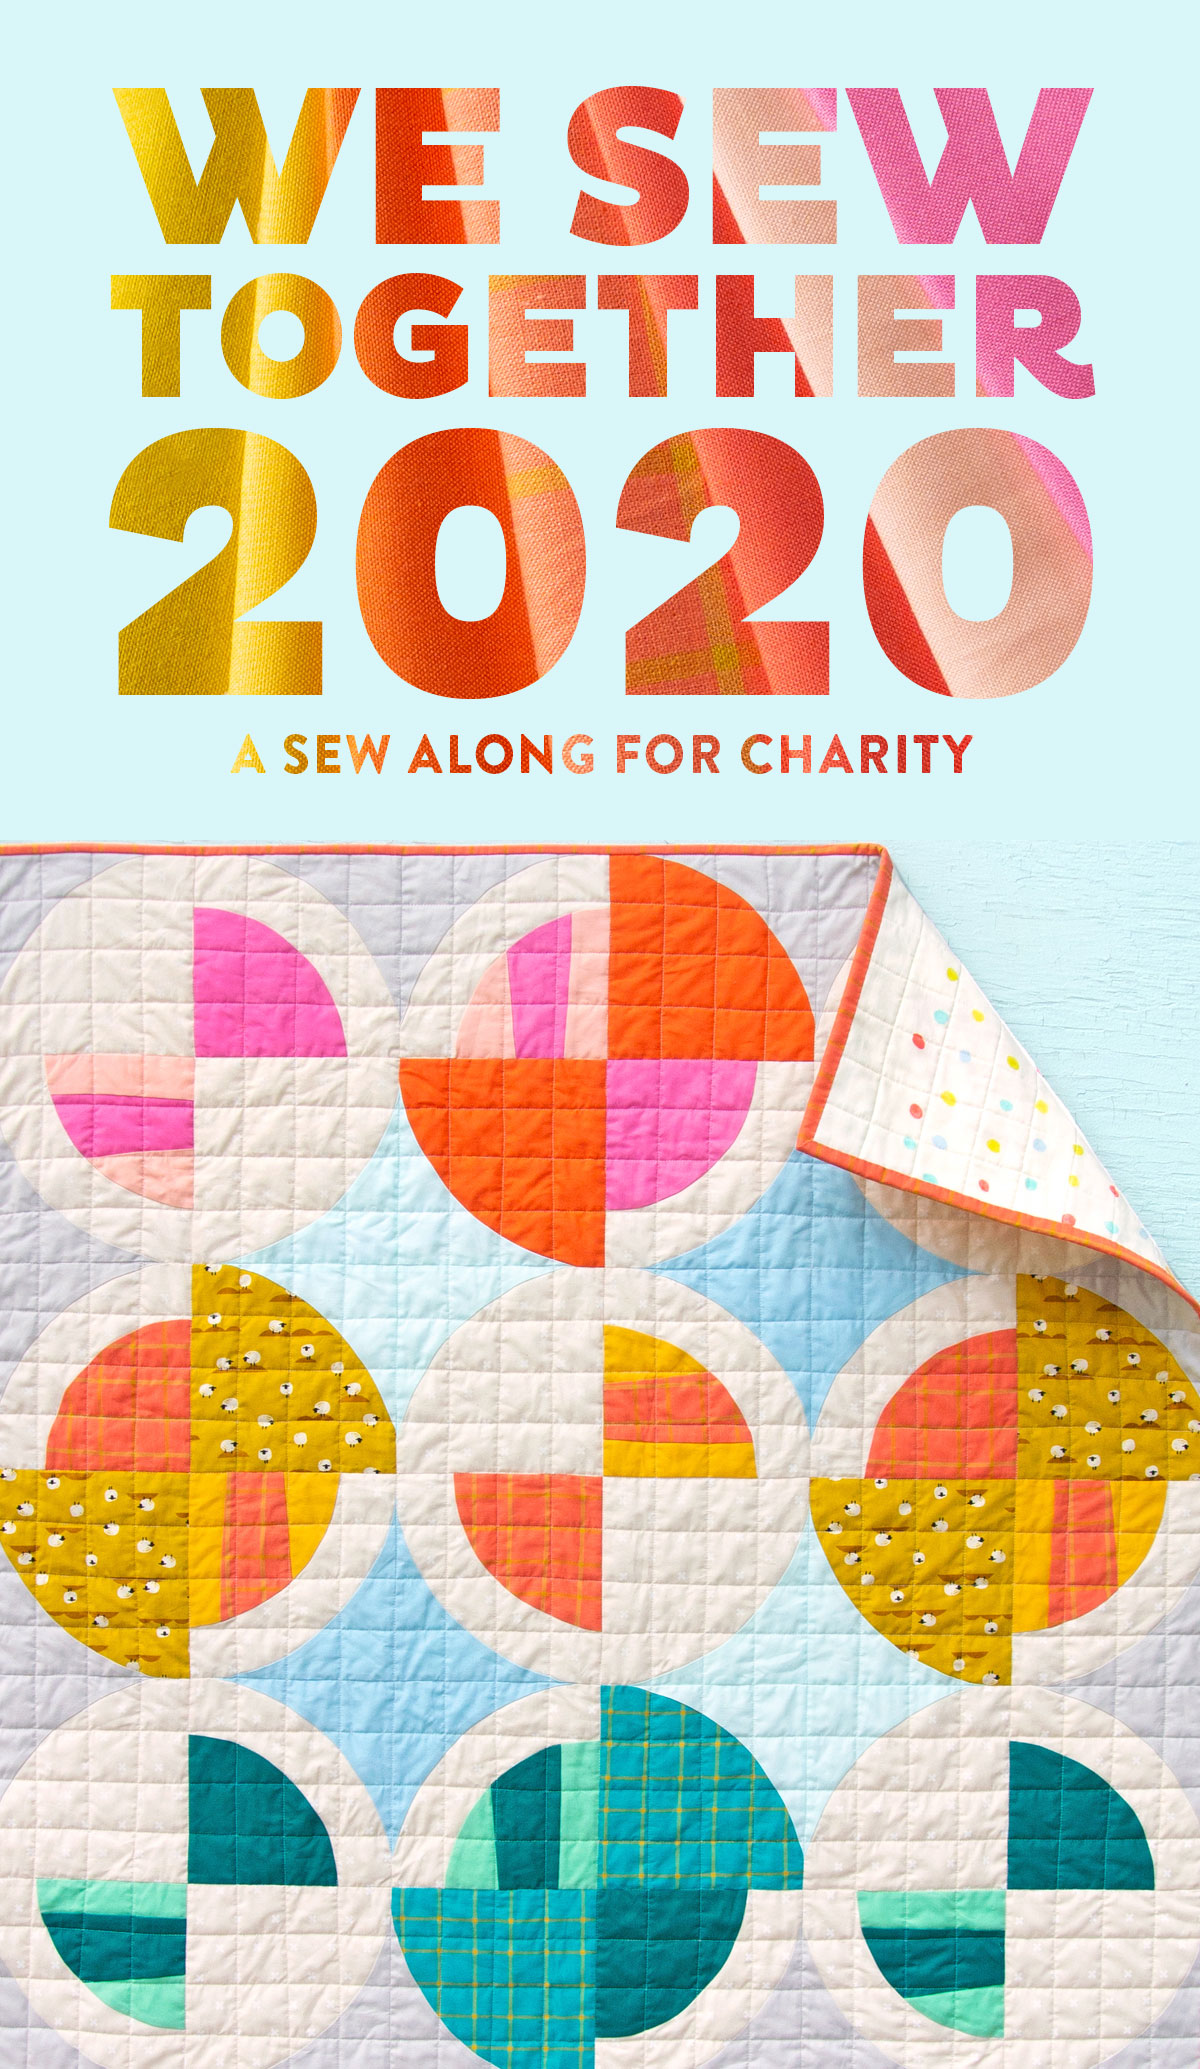 Join with hundreds of sewers, crafter and quilters as we make handmade quilts for charity! This annual sew along, led by Suzy Quilts, offers fabric coupons and prizes as we sew quilts to be donated to charities around the world. suzyquilts.com #quiltalong #sewalong